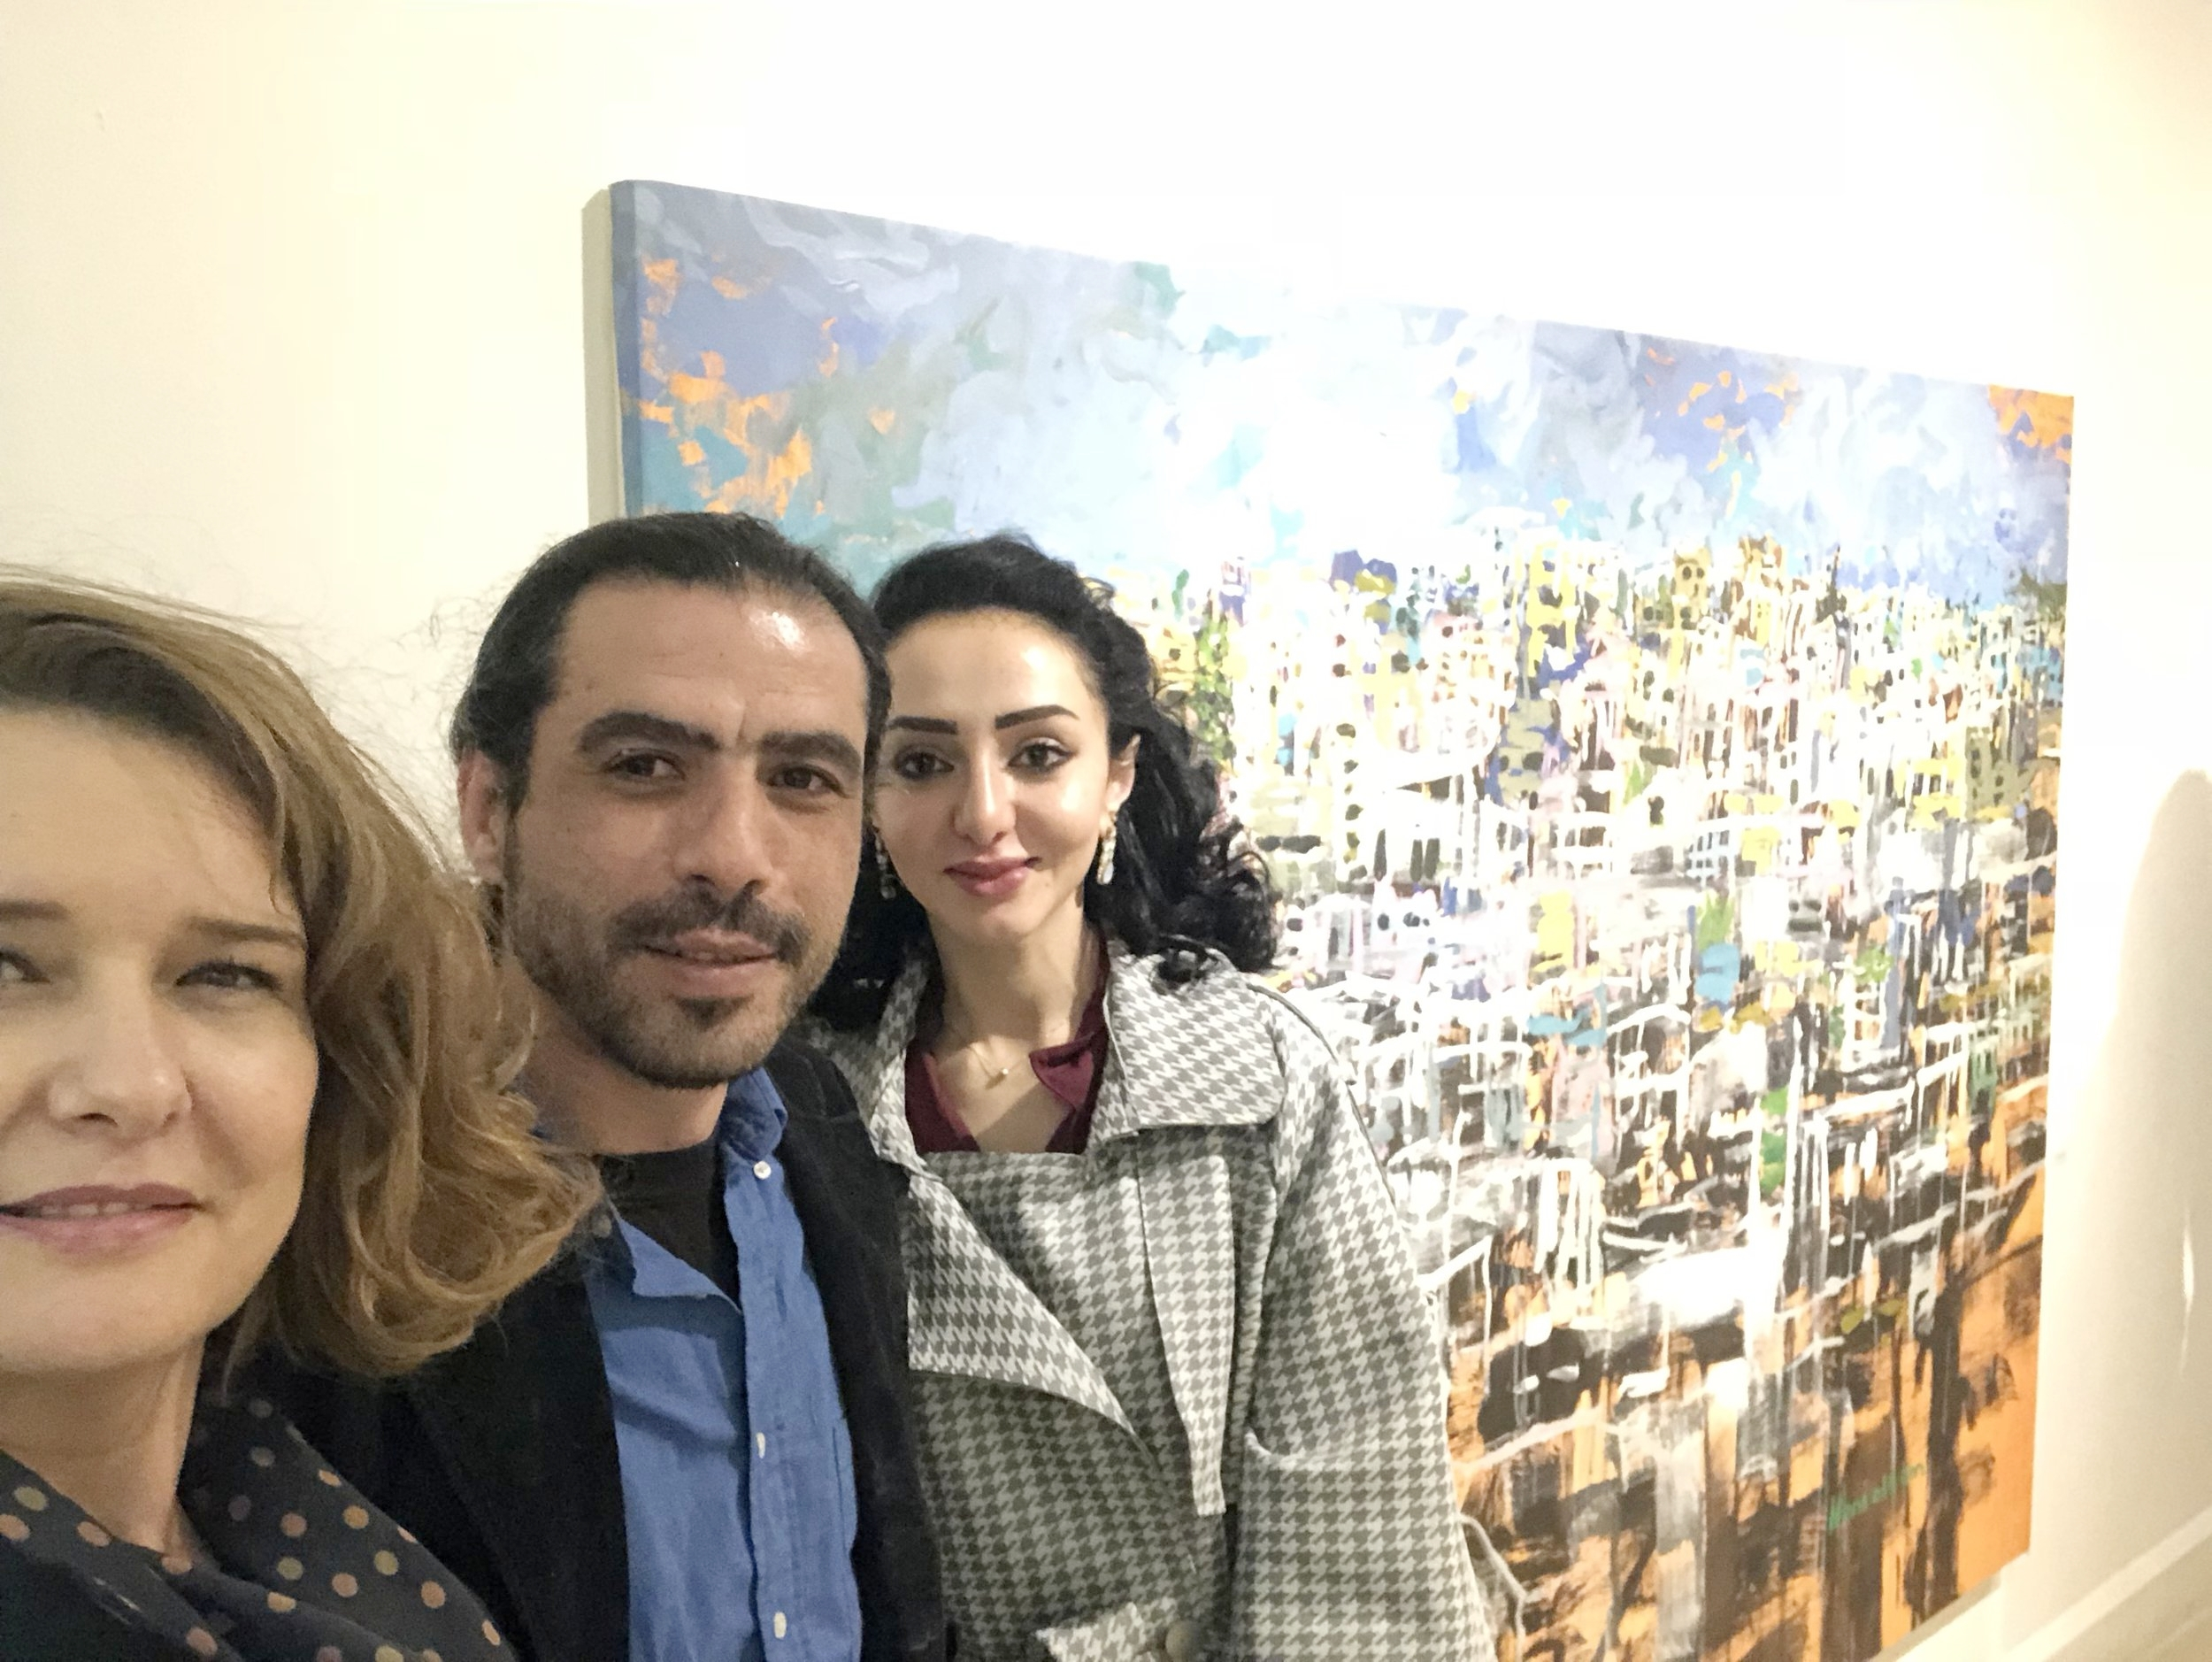 With the artist Hani Alqam and his lovely wife